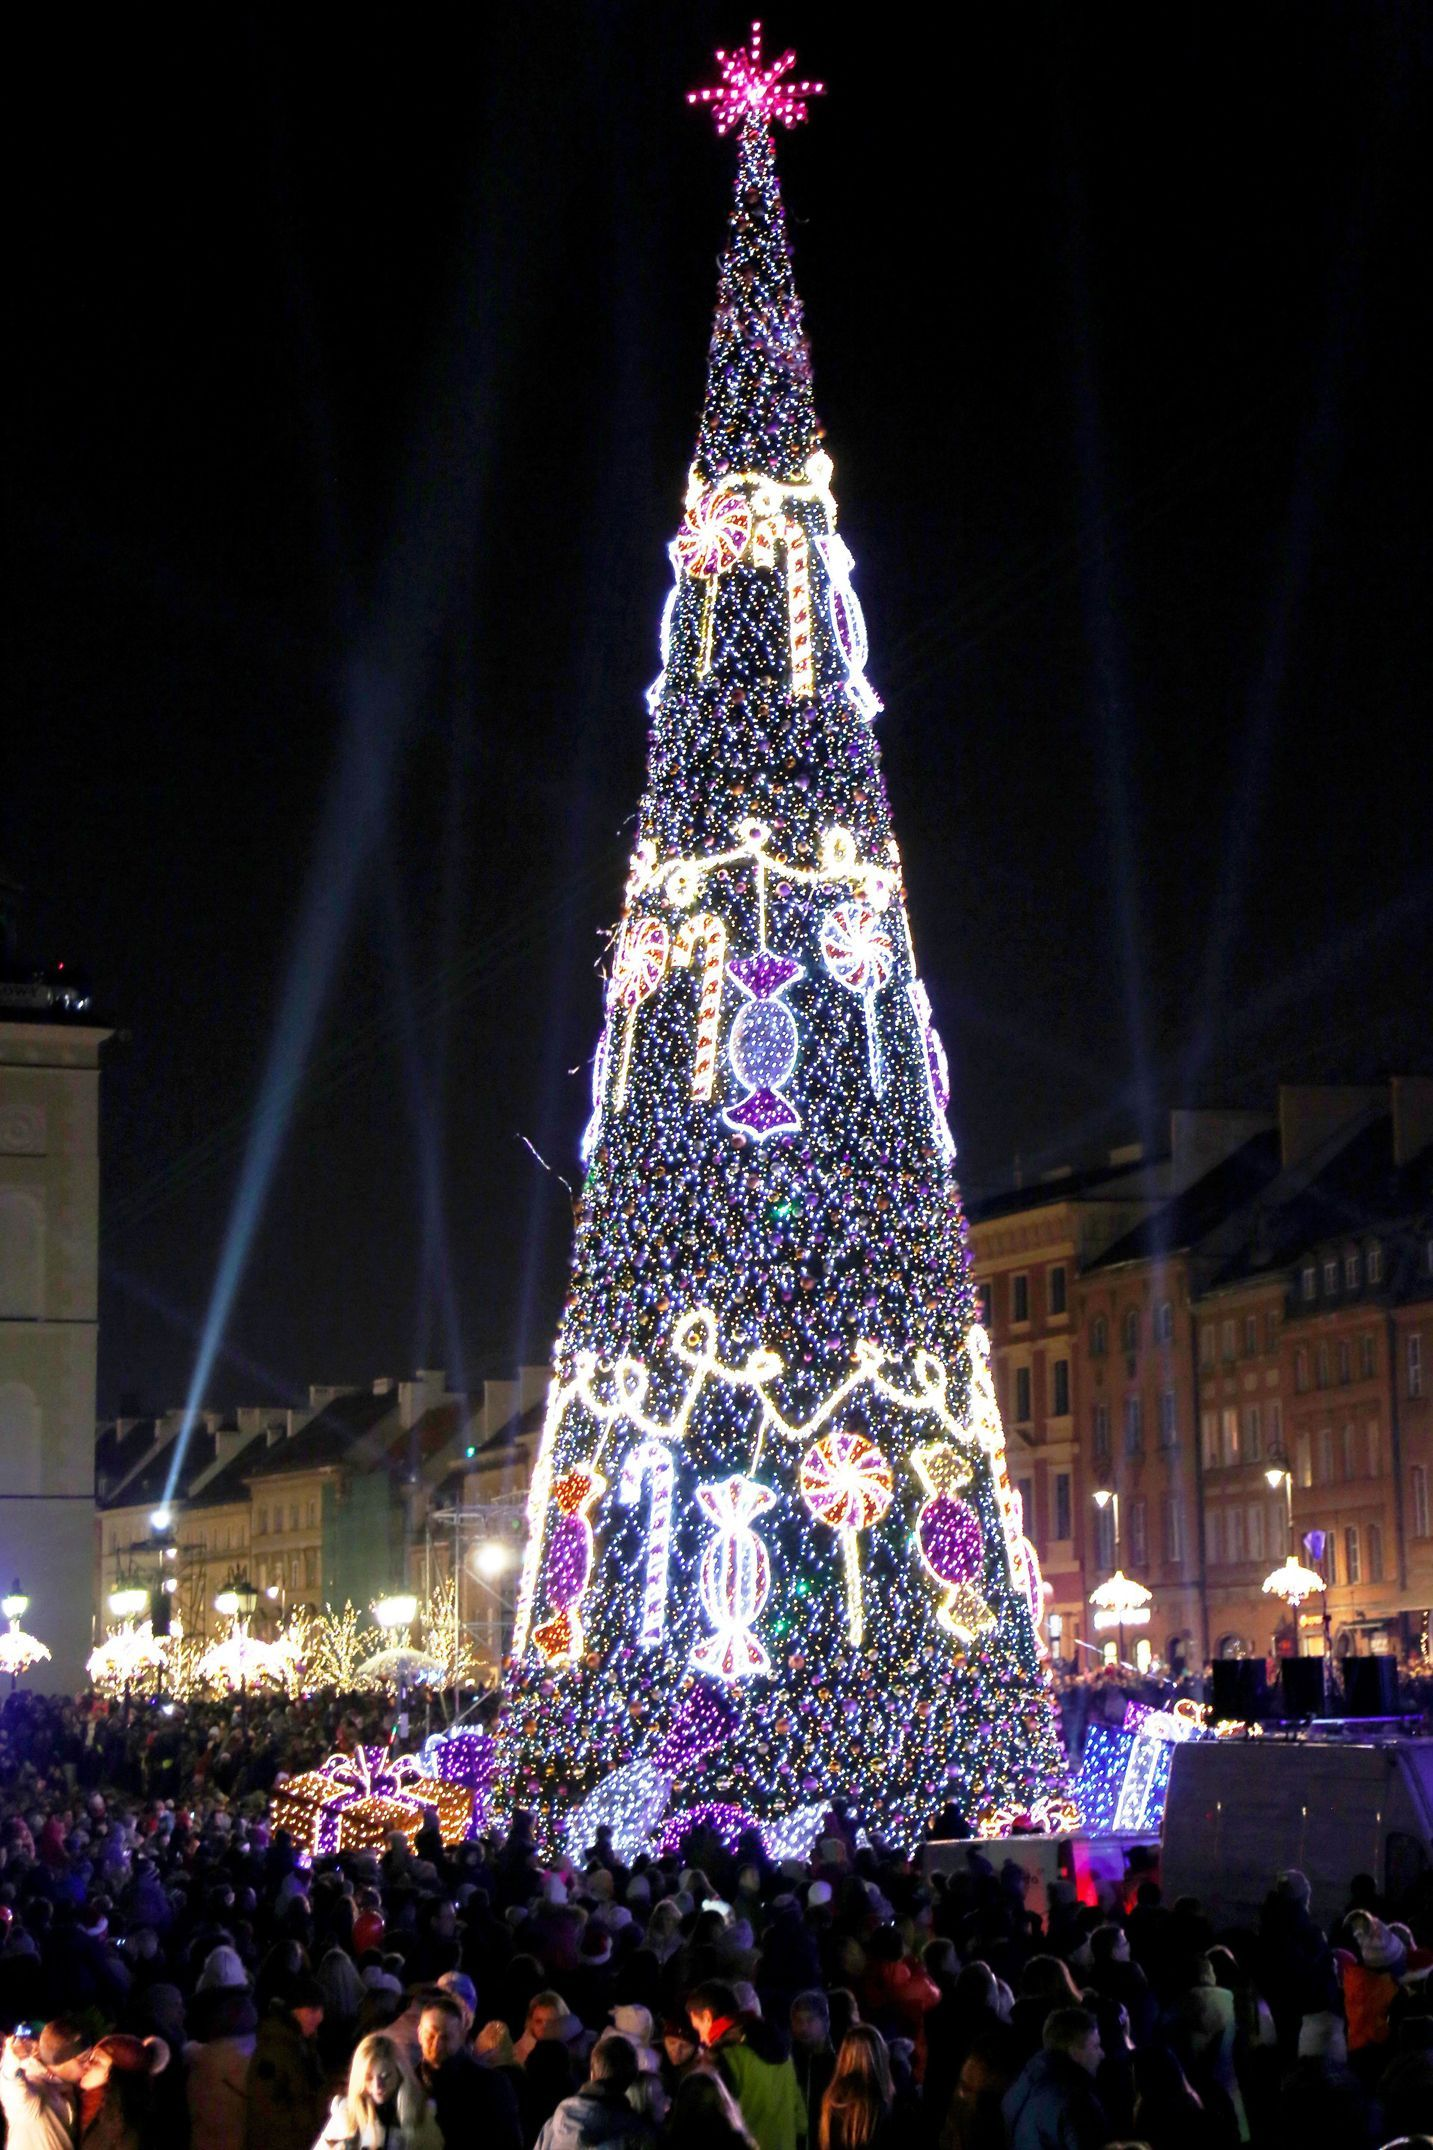 20 Of the Most Magnificent Christmas Trees Around the